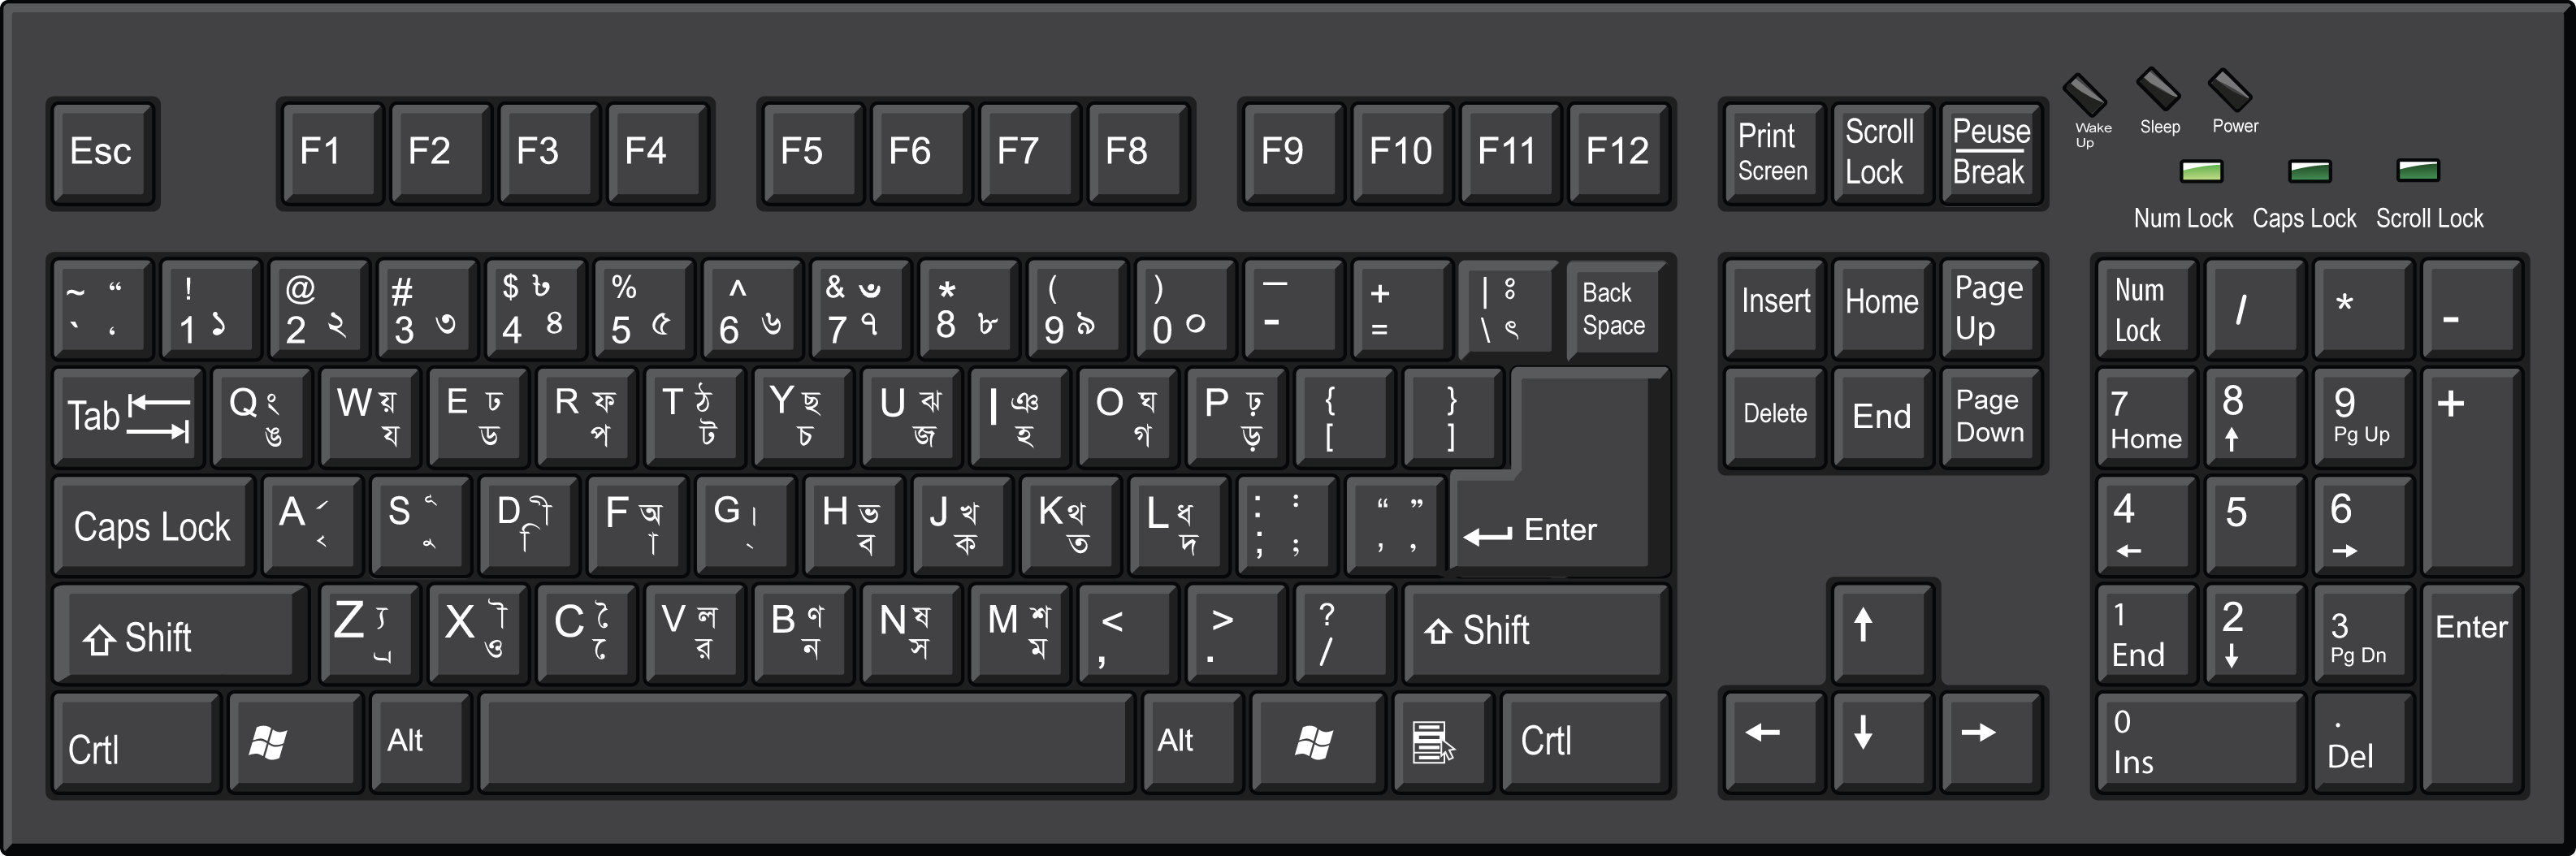 File:Bijoy Keyboard.png